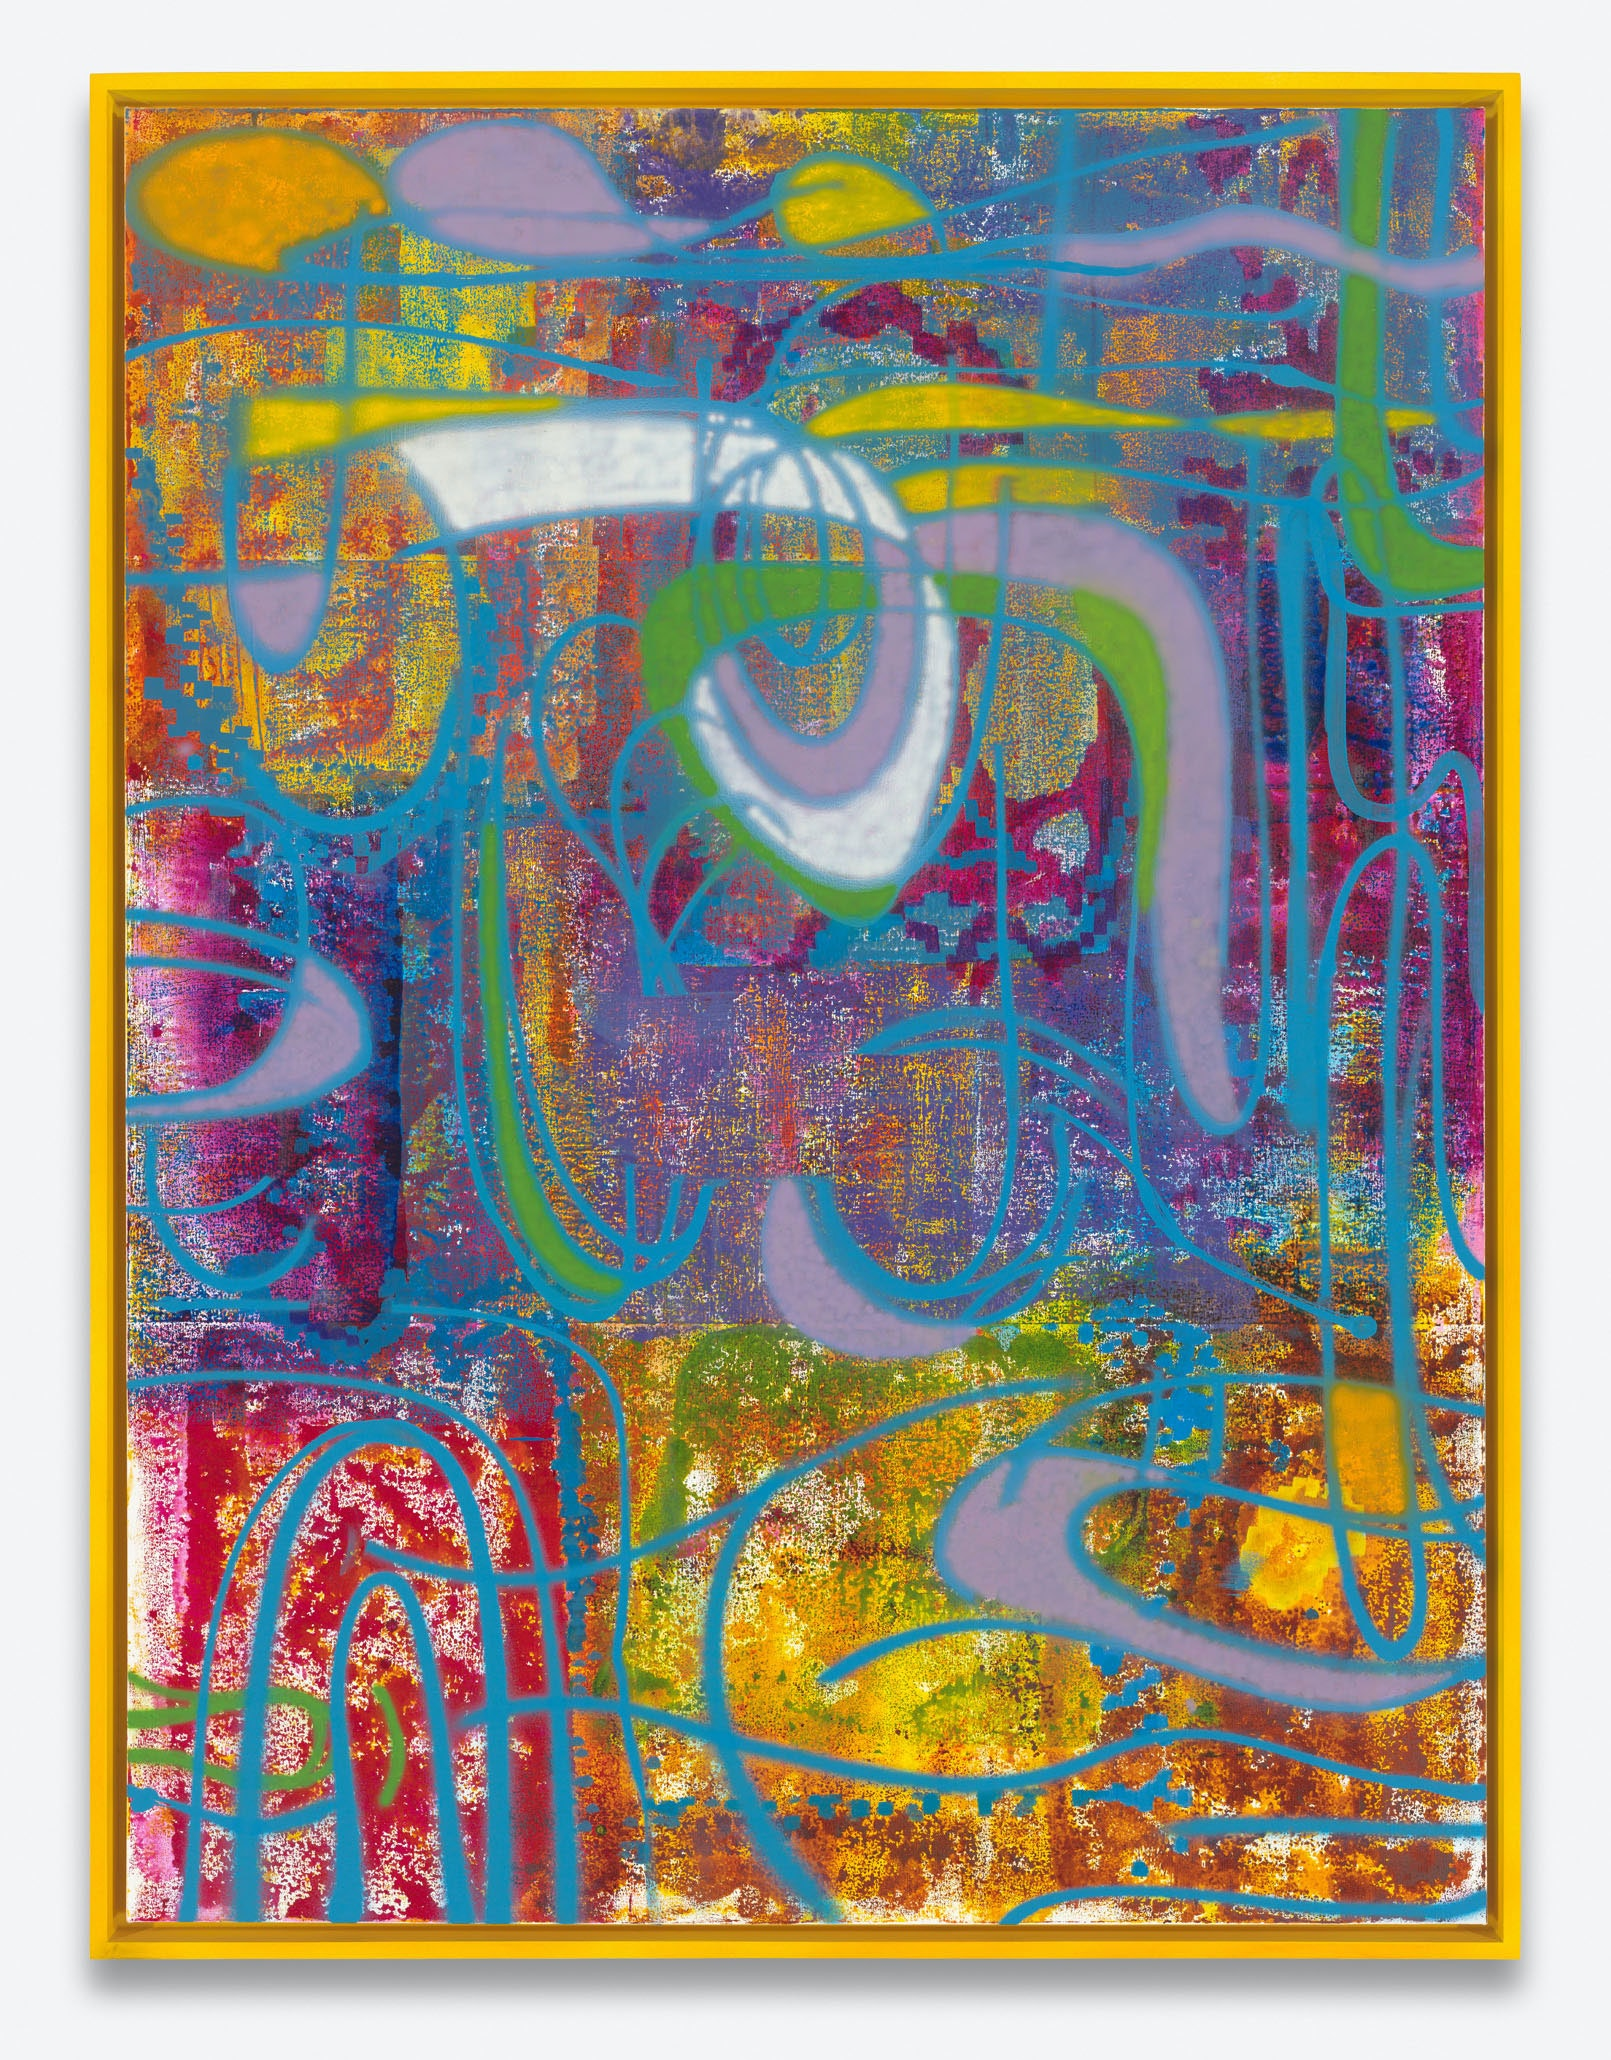 Keltie Ferris, <em>FEEEEELINGS</em>, 2020-21. Oil and watercolor on canvas in the artist's frame, 83 x 63 x 3 inches. © Keltie Ferris. Courtesy the artist and Mitchell-Innes & Nash, New York. Photo: Mark Woods.